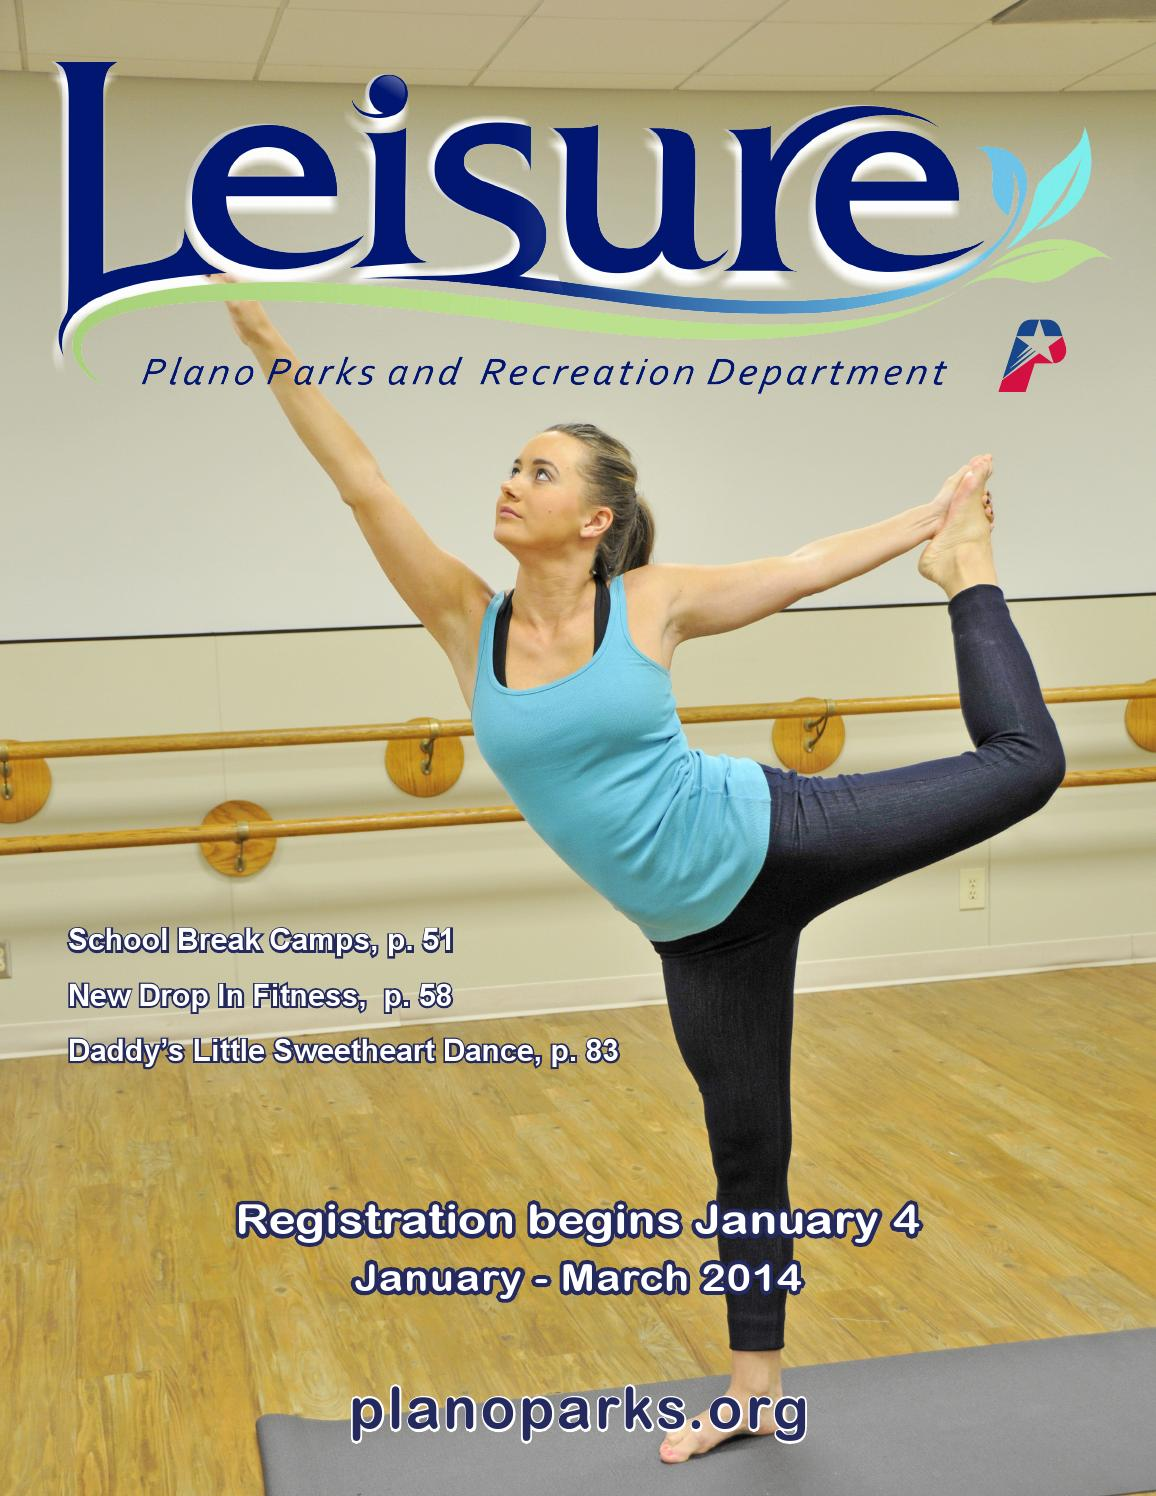 Plano Parks And Recreation Winter 2014 Leisure Catalog By Plano Parks And Recreation Issuu